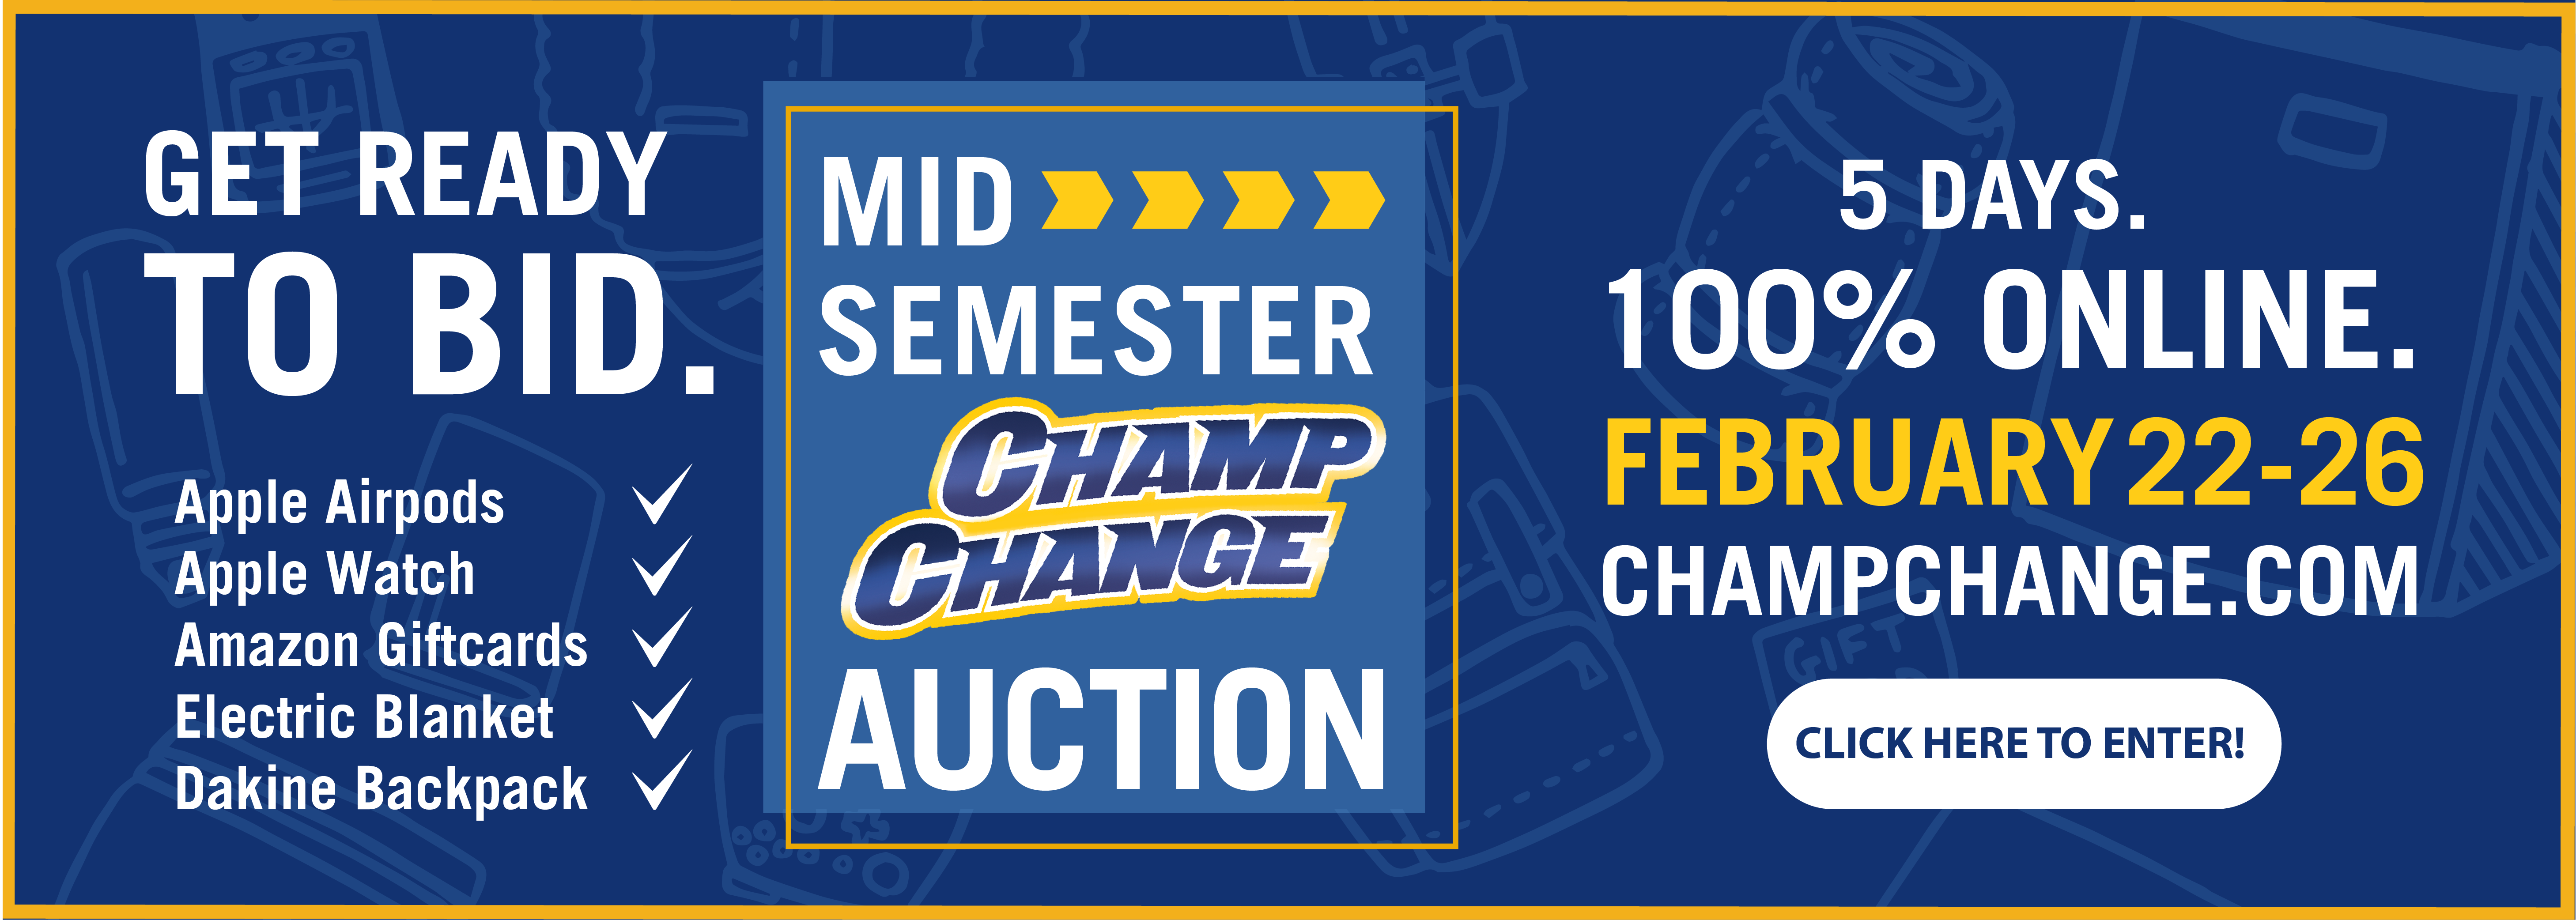 Mid Semester Champchange Auction. 5 days. 100% online. February 22-26. champchange.com click here. Get ready to bid